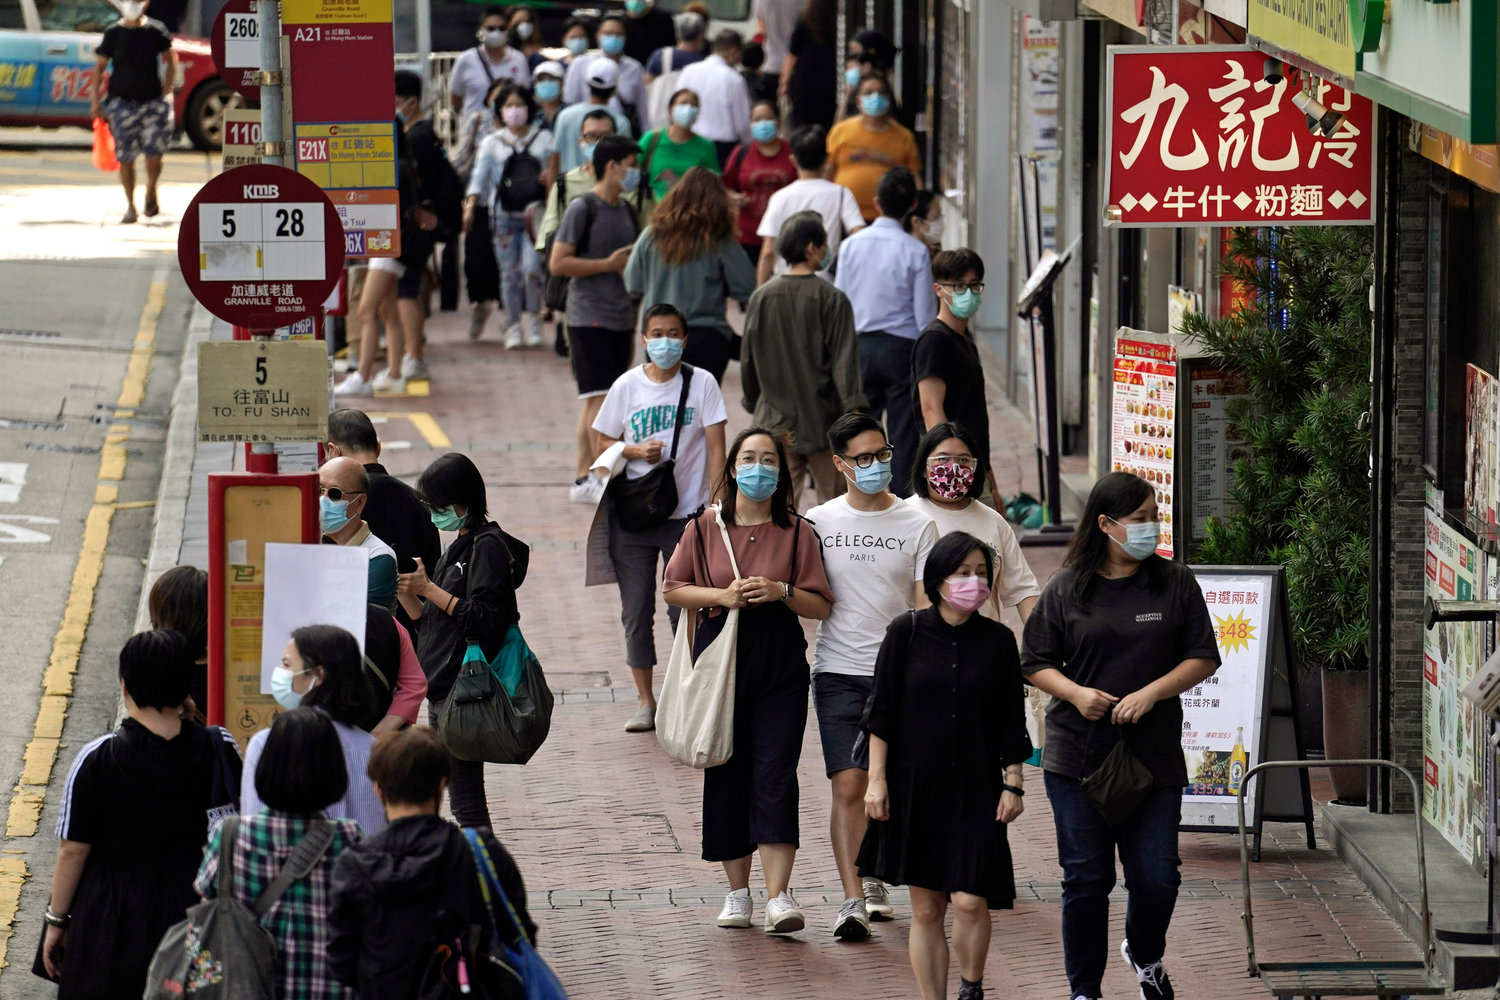 People wearing masks to protect against the coronavirus, walk down a street in Hong Kong, Friday, Oct. 9, 2020. (AP Photo/Kin Cheung)